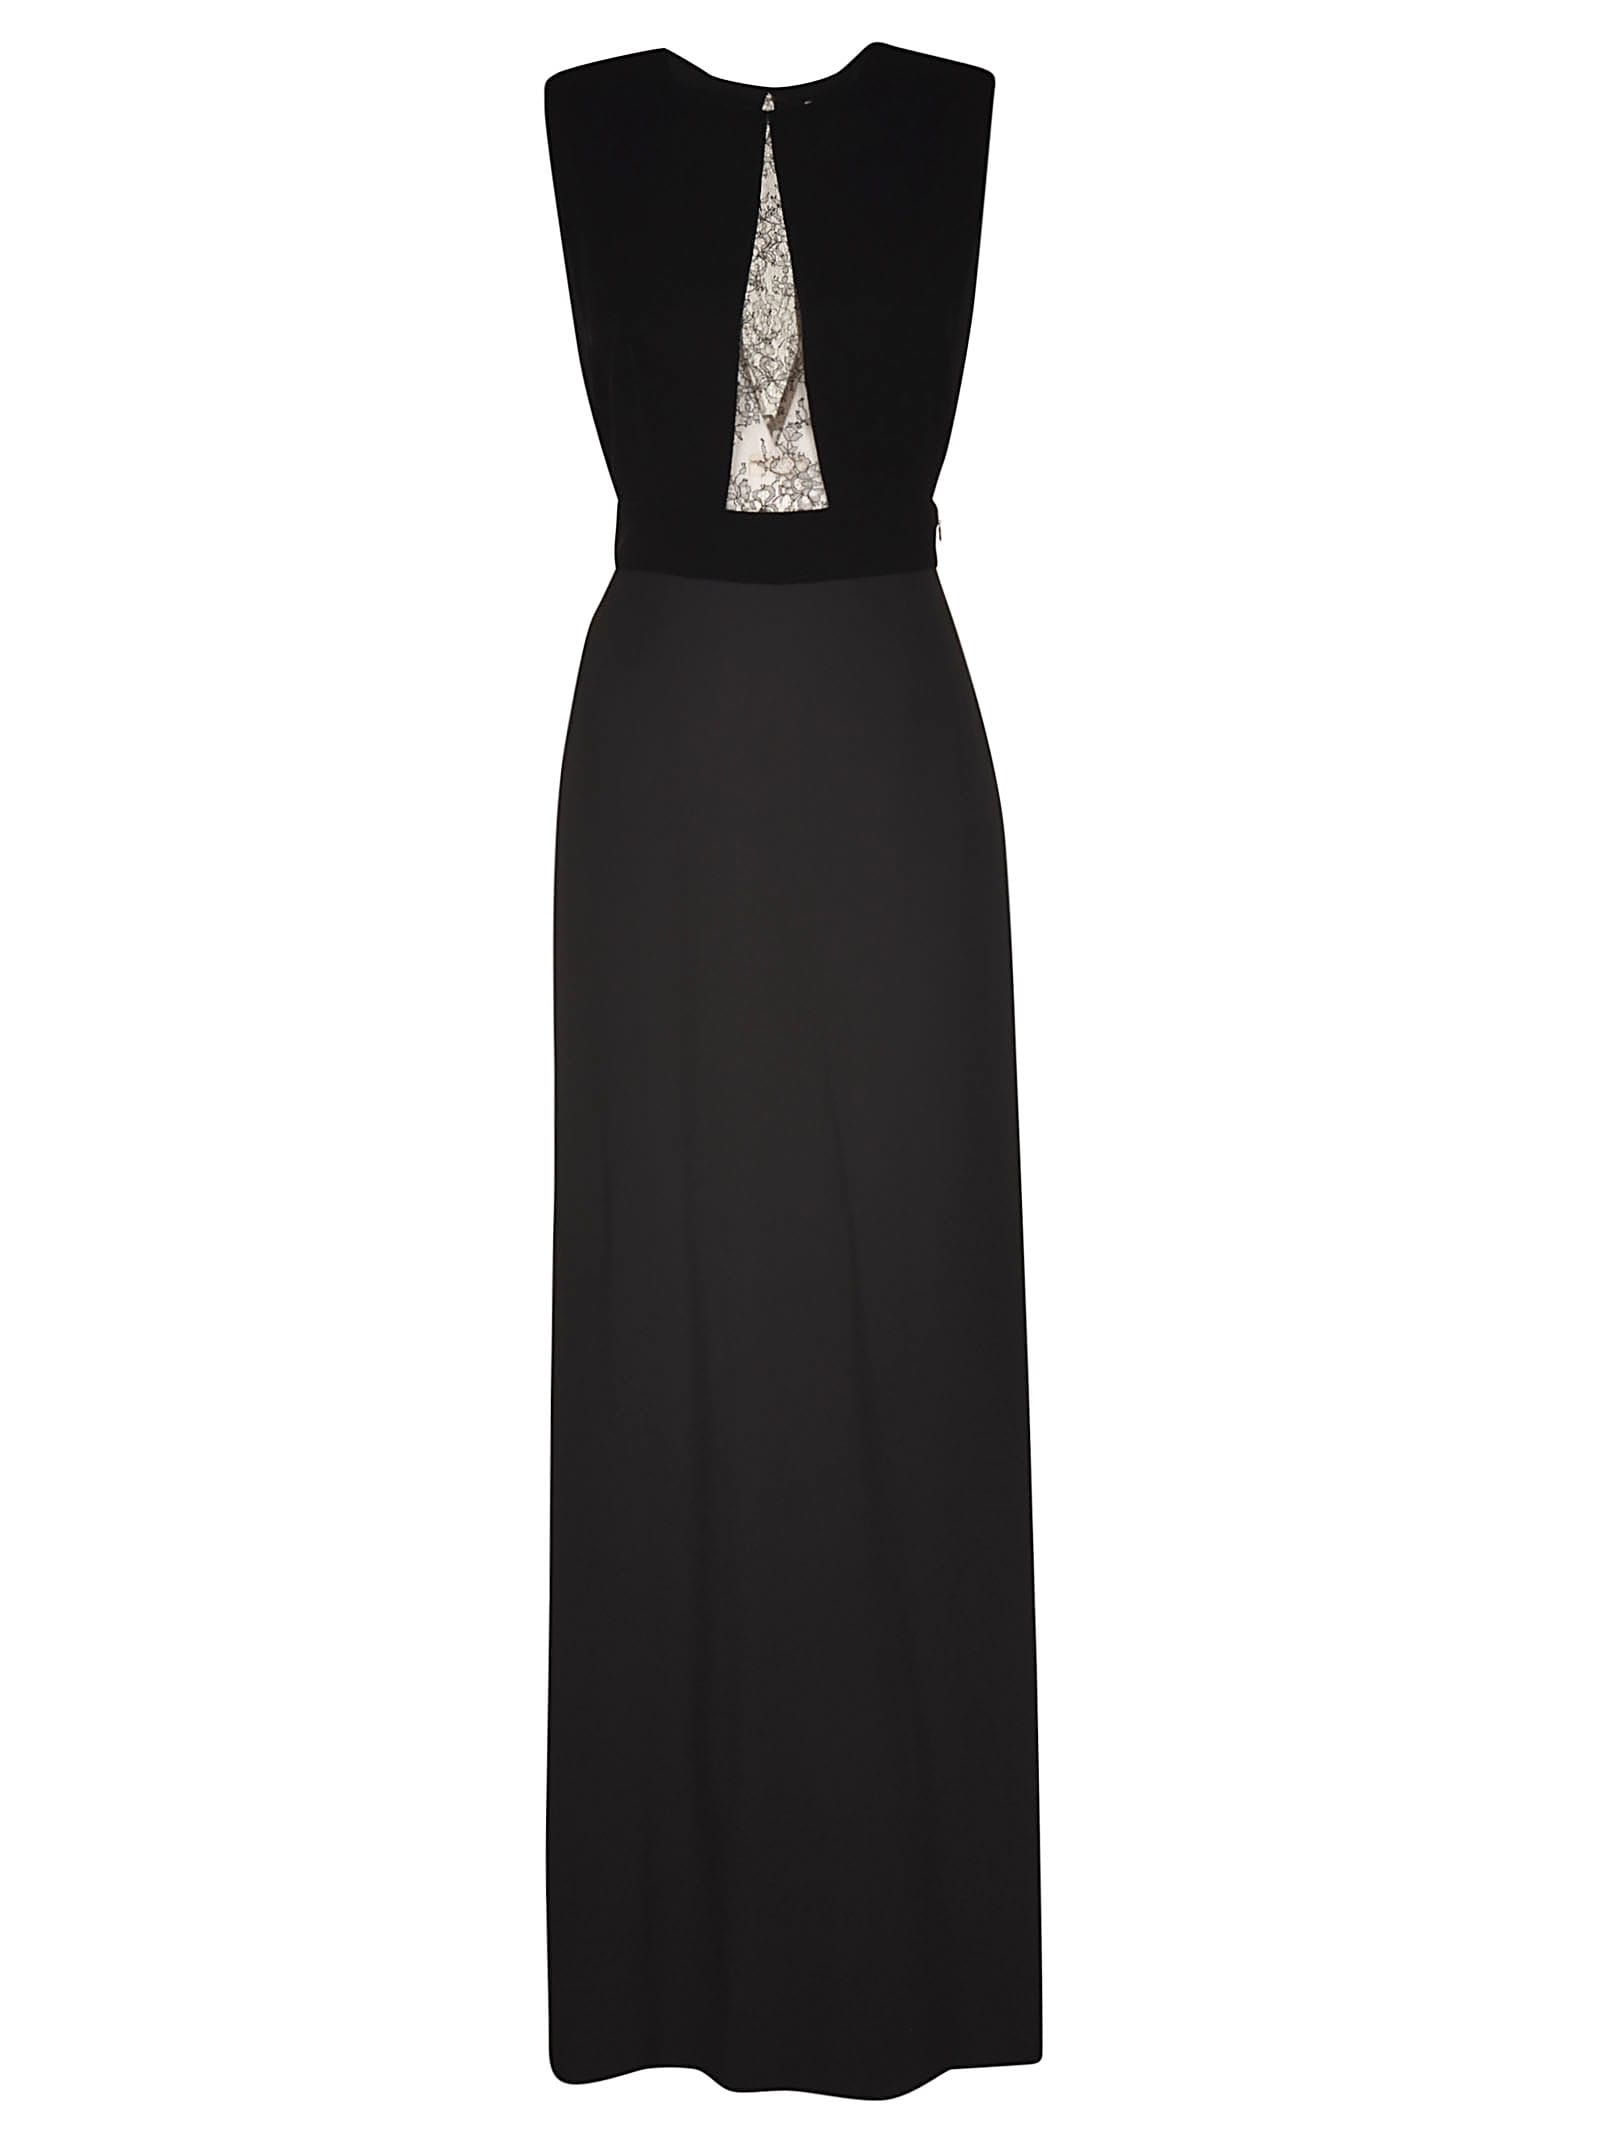 Givenchy Lace Evening Dress